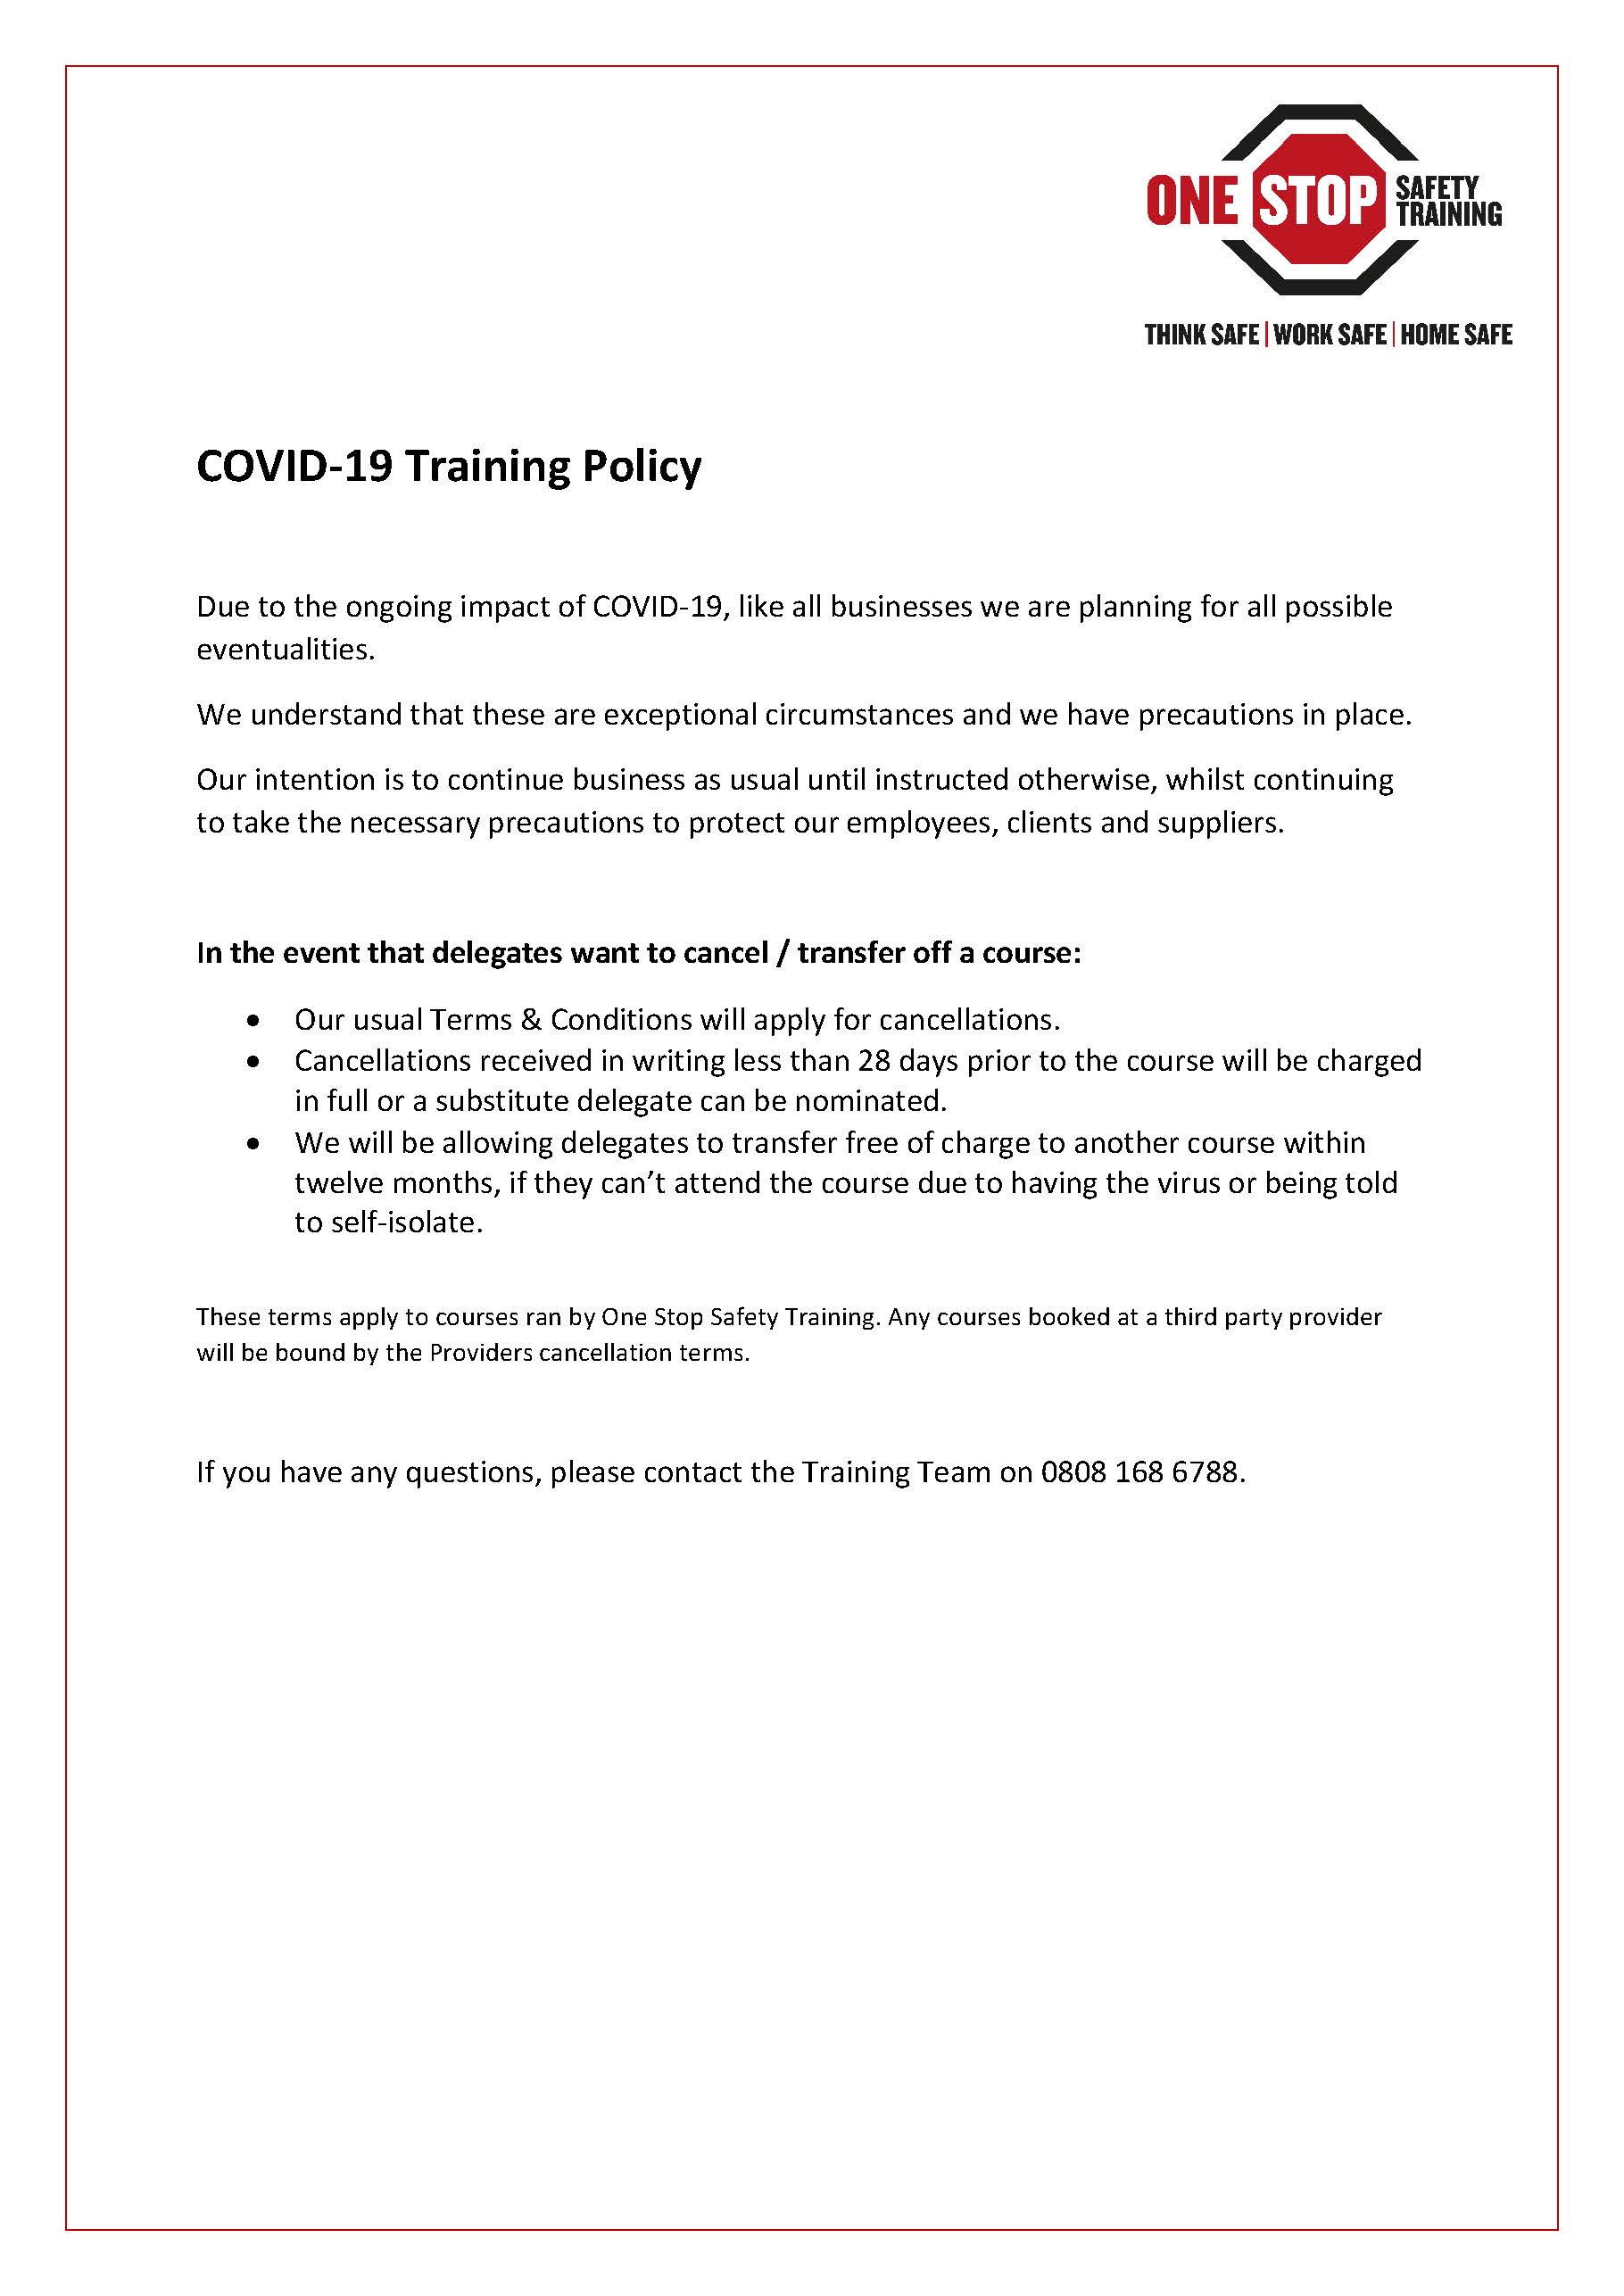 COVID-19 Training Policy